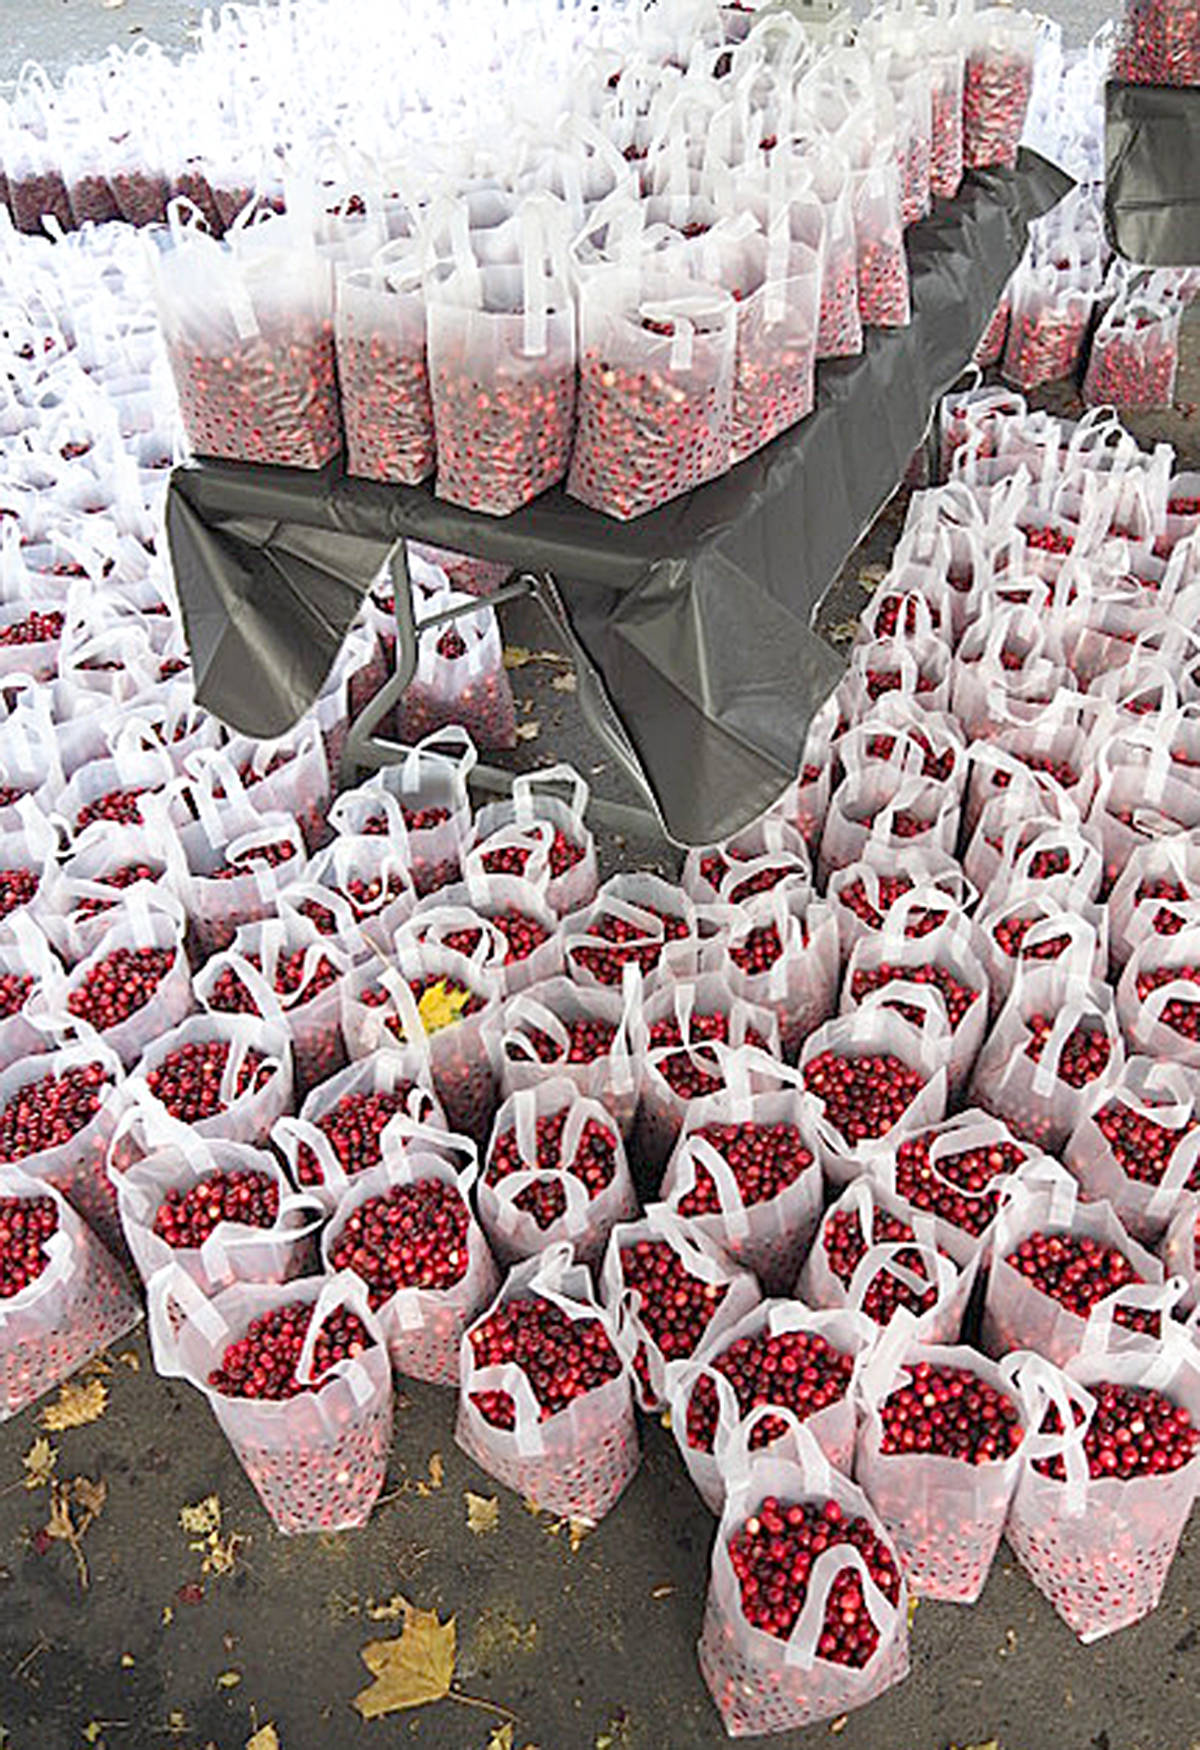 """Several spectators from this year's Cranberry Festival shared their thoughts on the event, including Jim Orlowski, who was paritcularly impressed by the """"old dues"""" entertainin in front of Eighteen 27. (Jim Orlowski/Special to the Langley Advance Times)"""